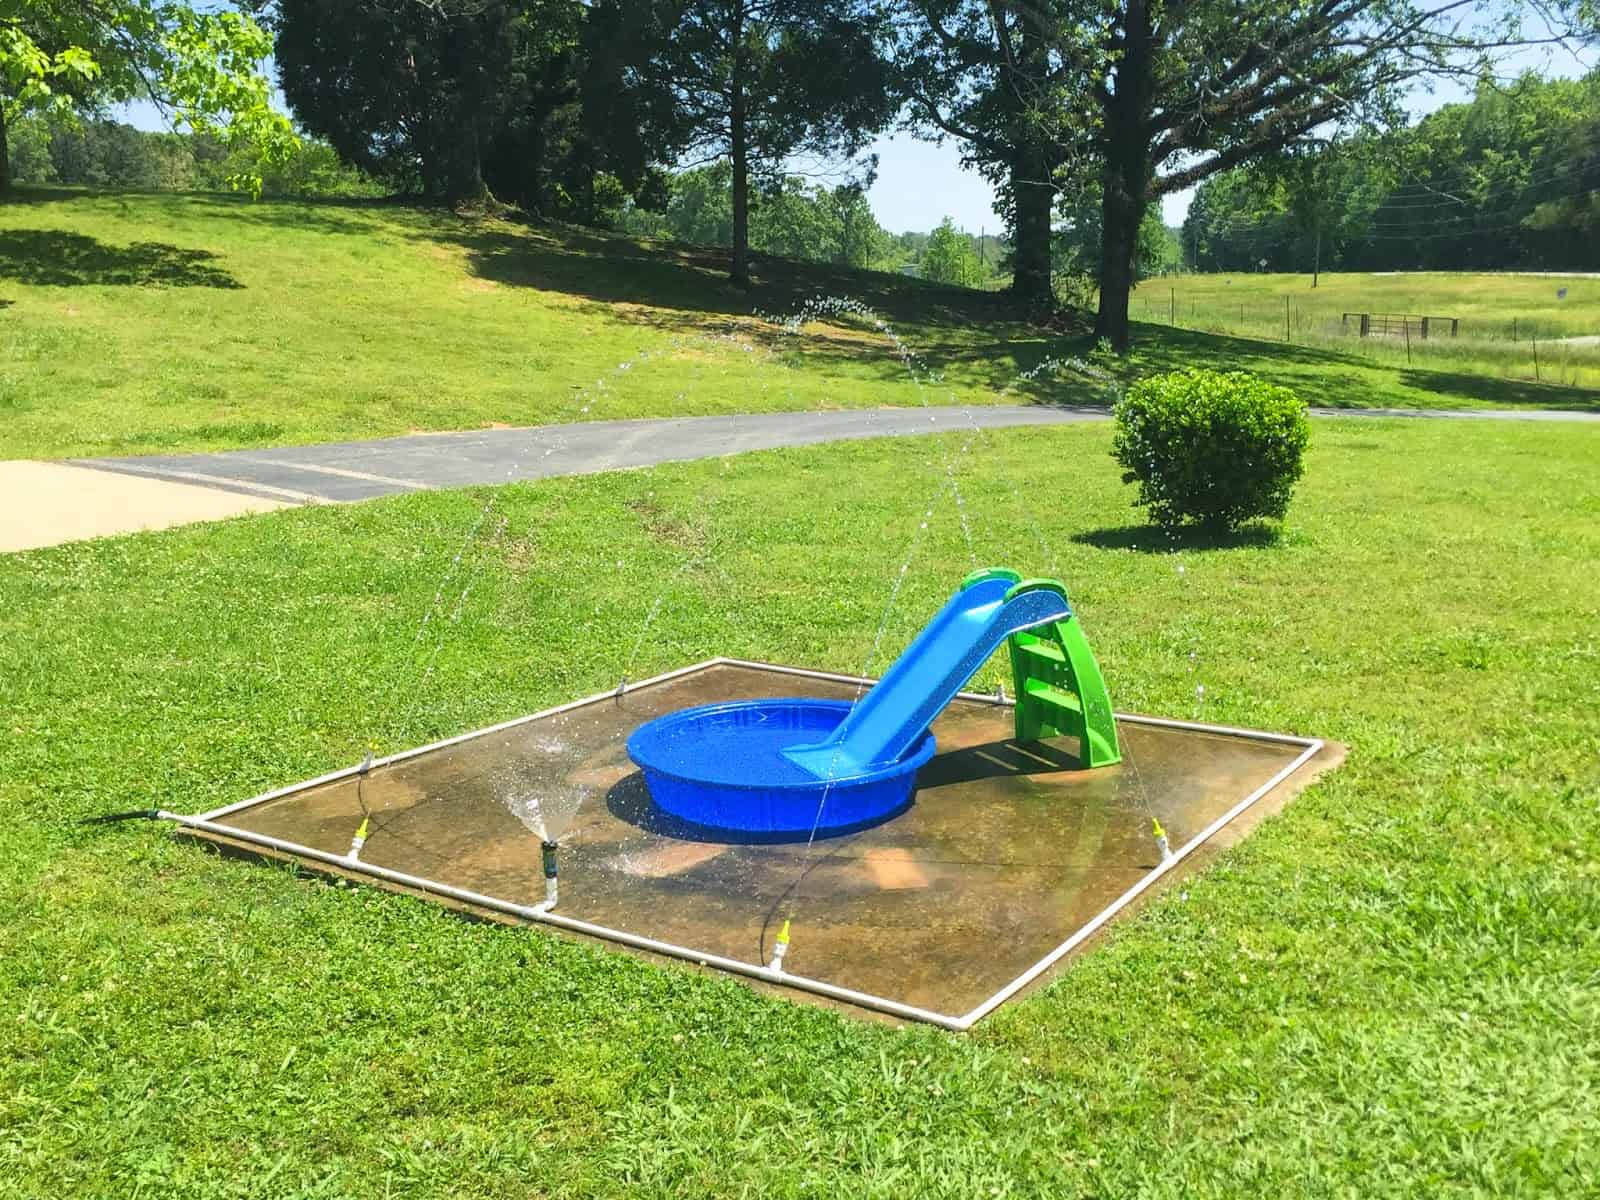 This easy DIY splash pad (via Little White House Blog) is just one of many amazing DIY backyard play areas you can make to keep the kids playing outside longer.